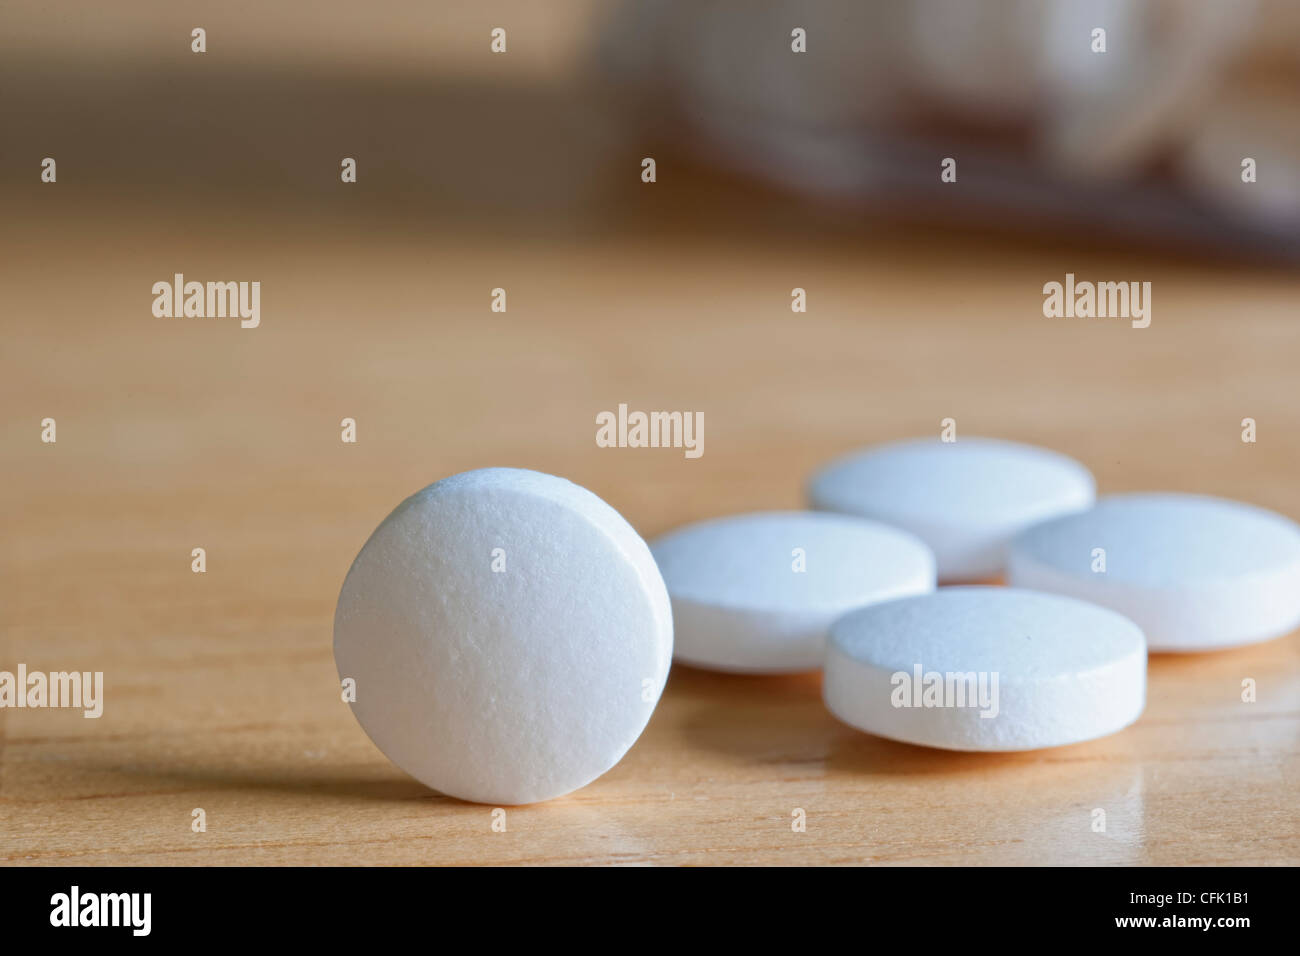 pain reliever stock photos  u0026 pain reliever stock images